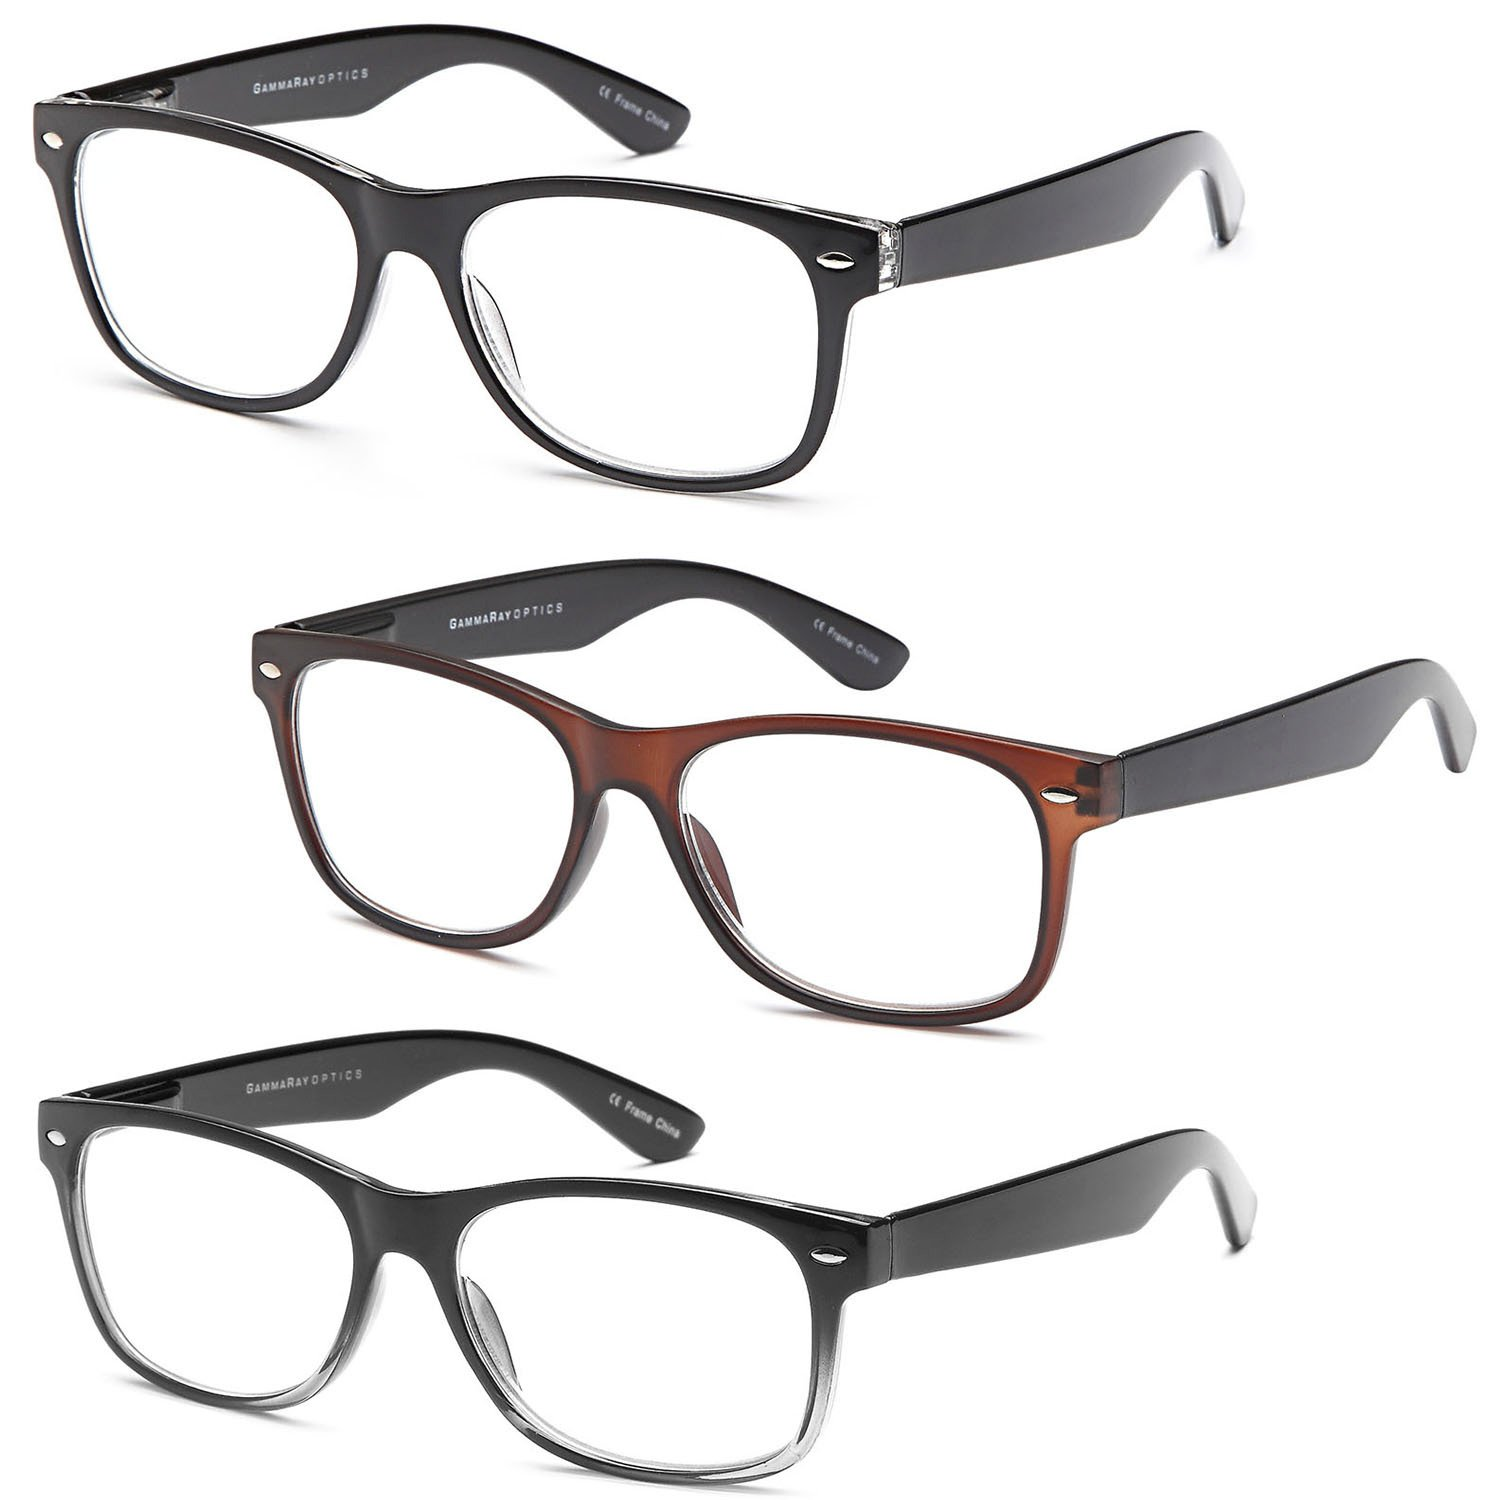 GAMMA RAY 3 Pairs Classic Spring Loaded Readers Reading Glasses - 1.75x